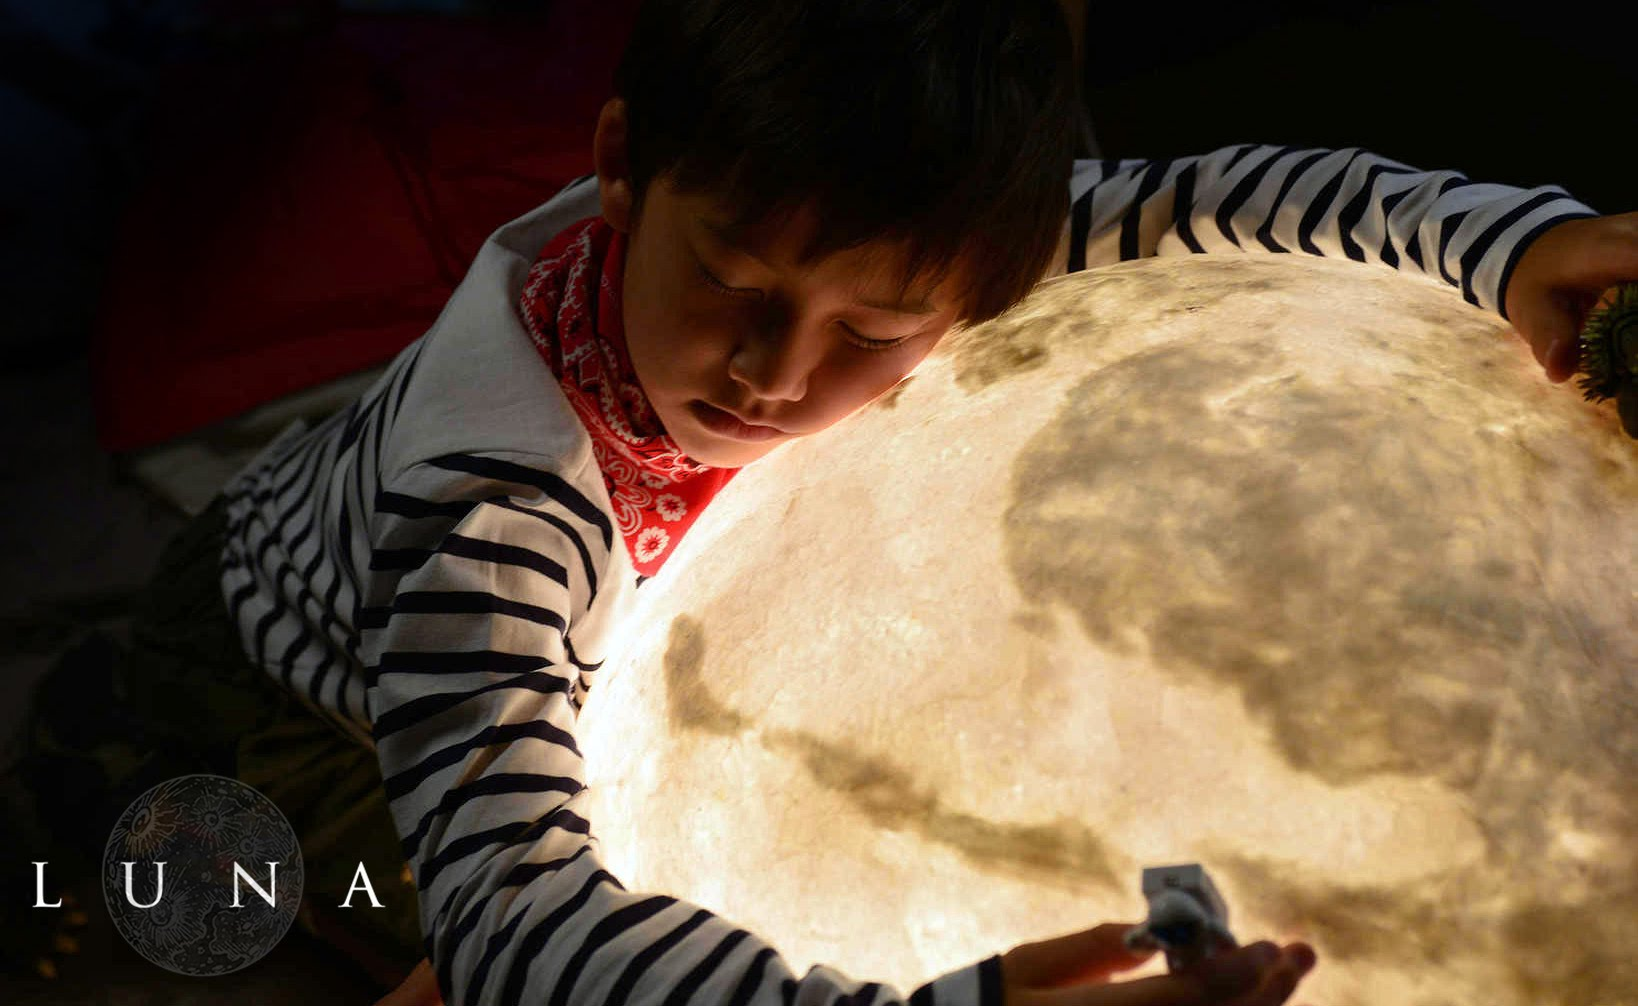 Luna - The Lamp that Looks Like the Moon